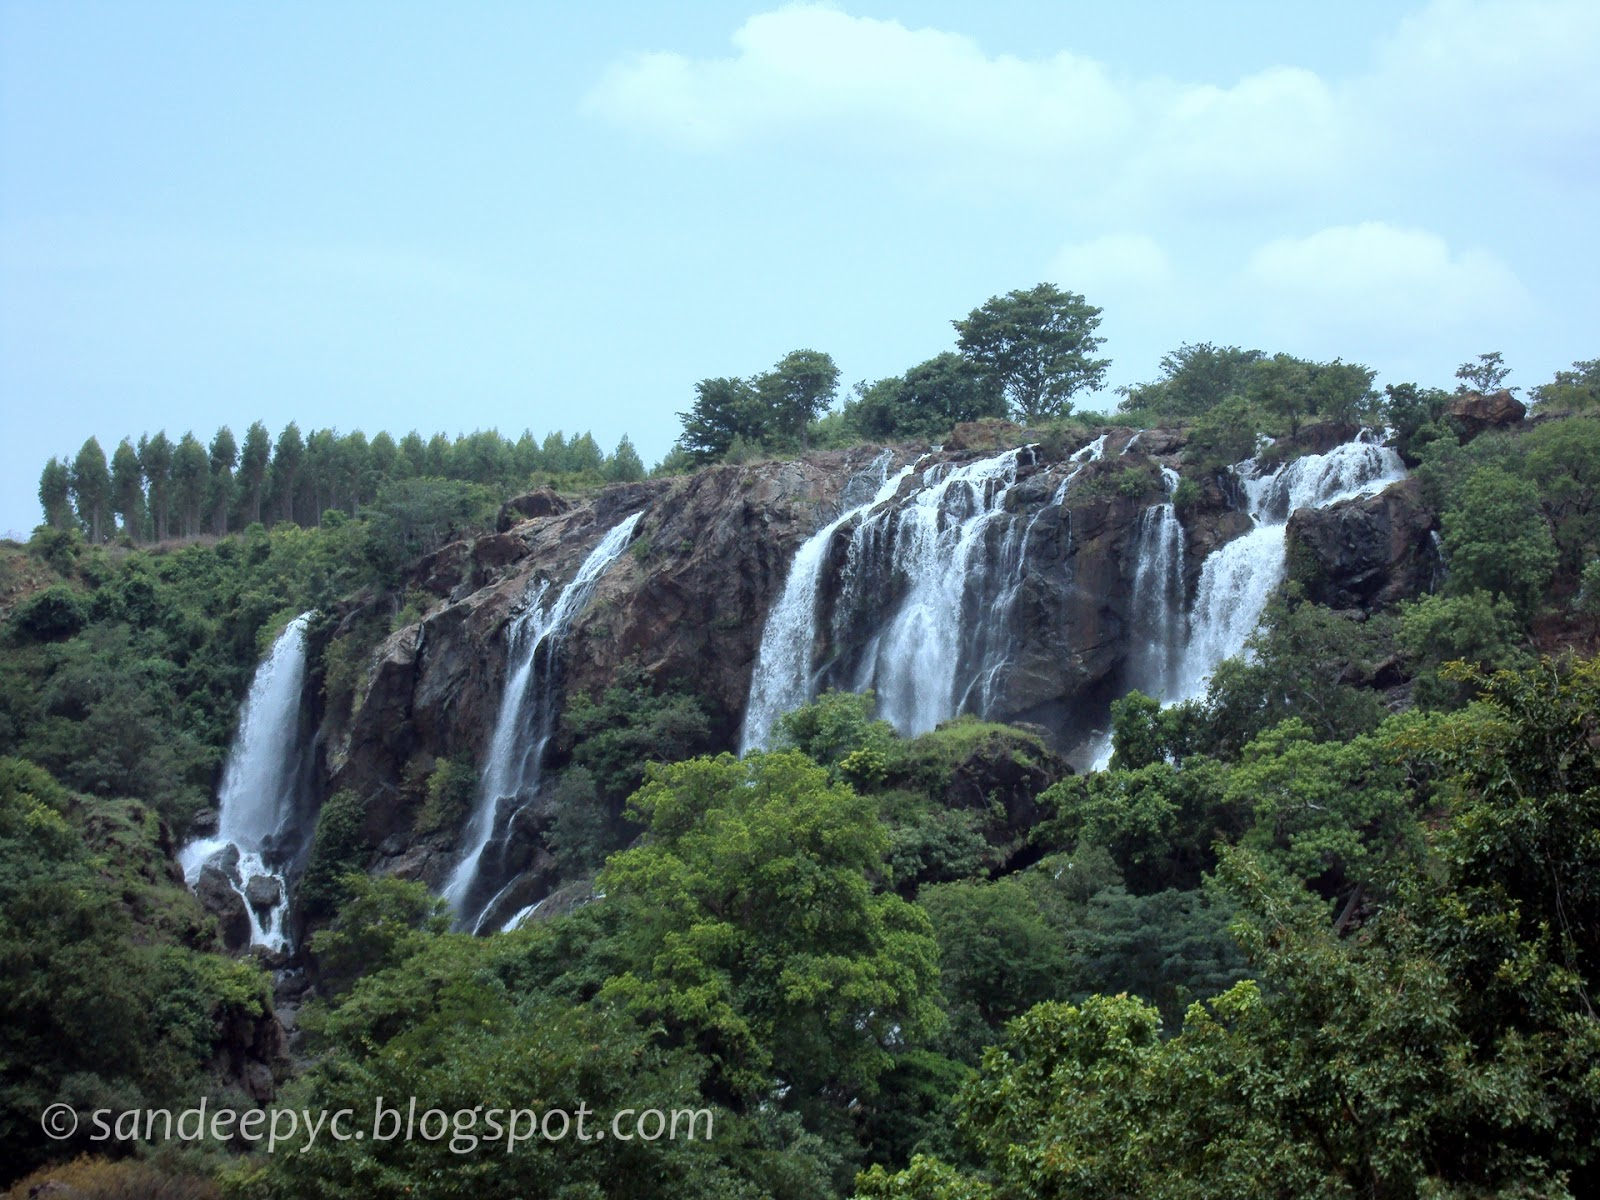 (From left) Bharachukki falls part 1